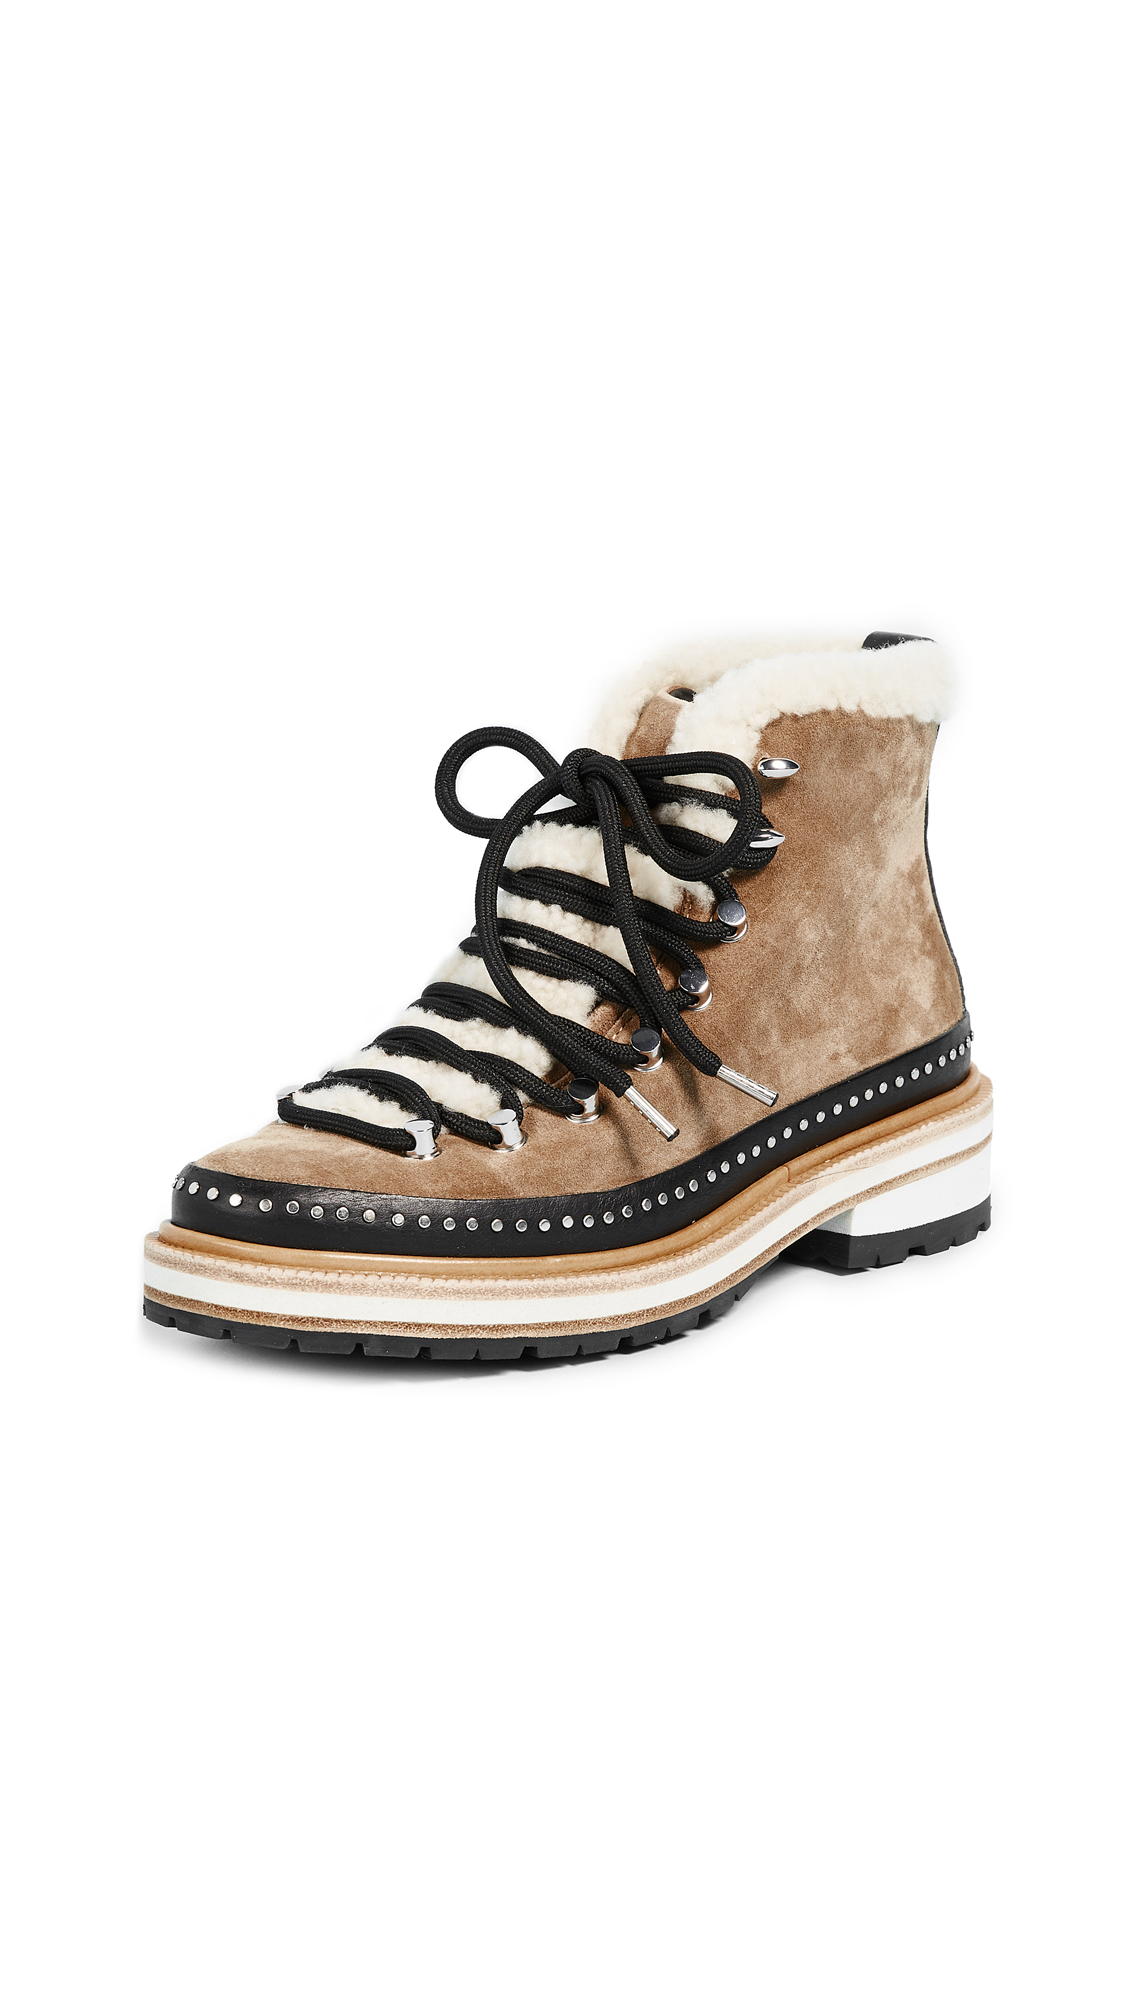 Rag & Bone Compass Booties - Camel